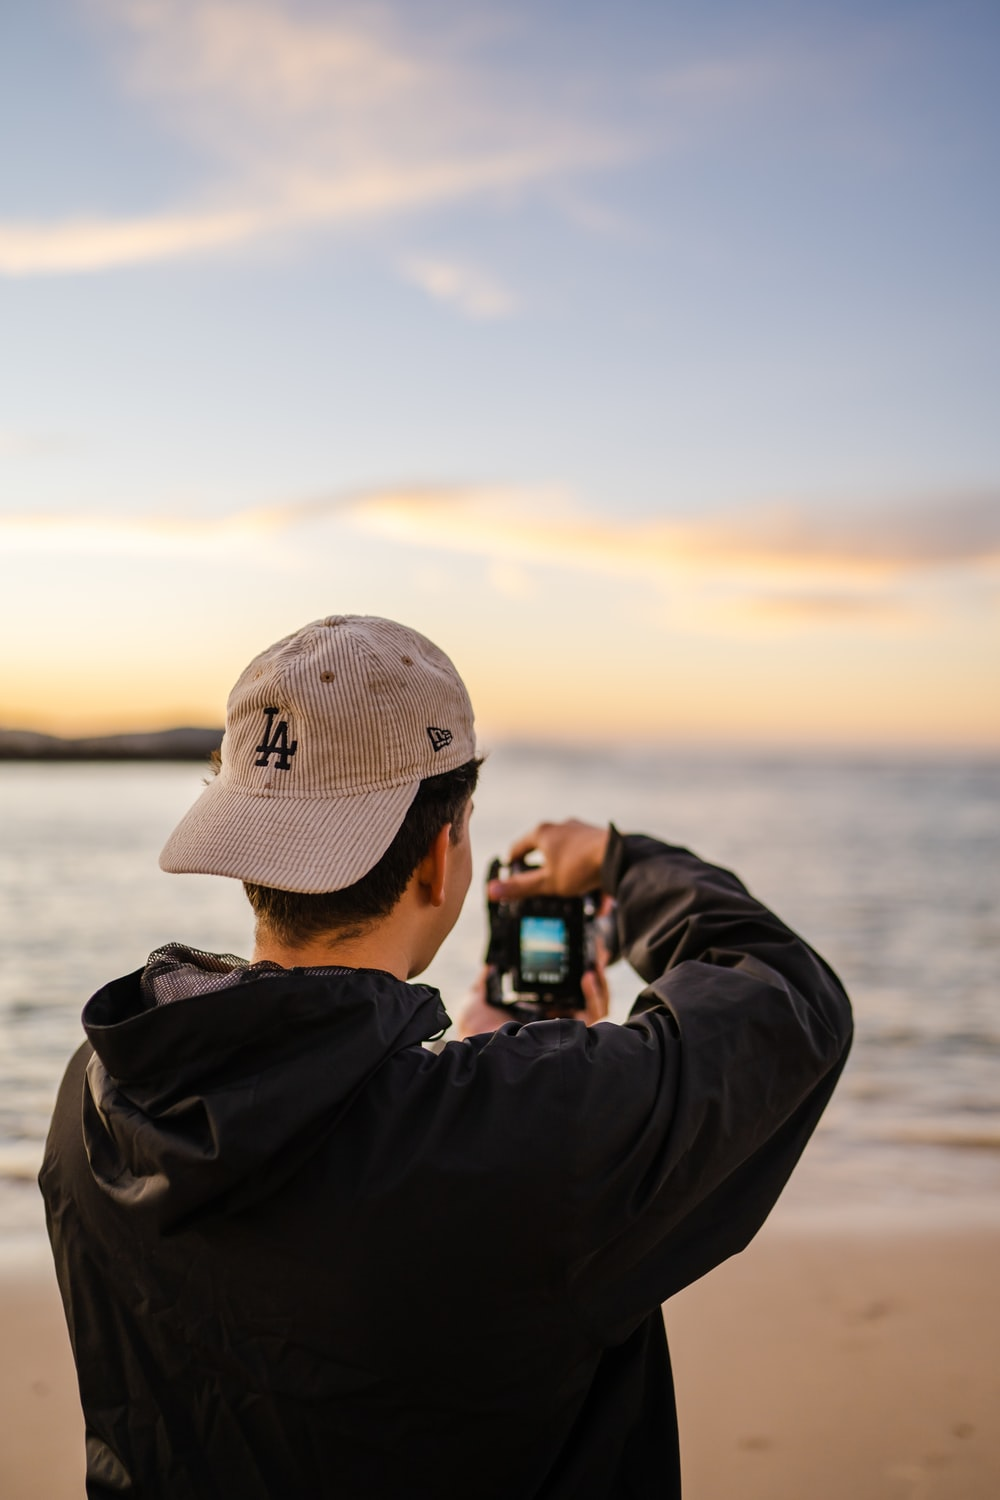 man in gray jacket and gray cap taking photo of sea during daytime